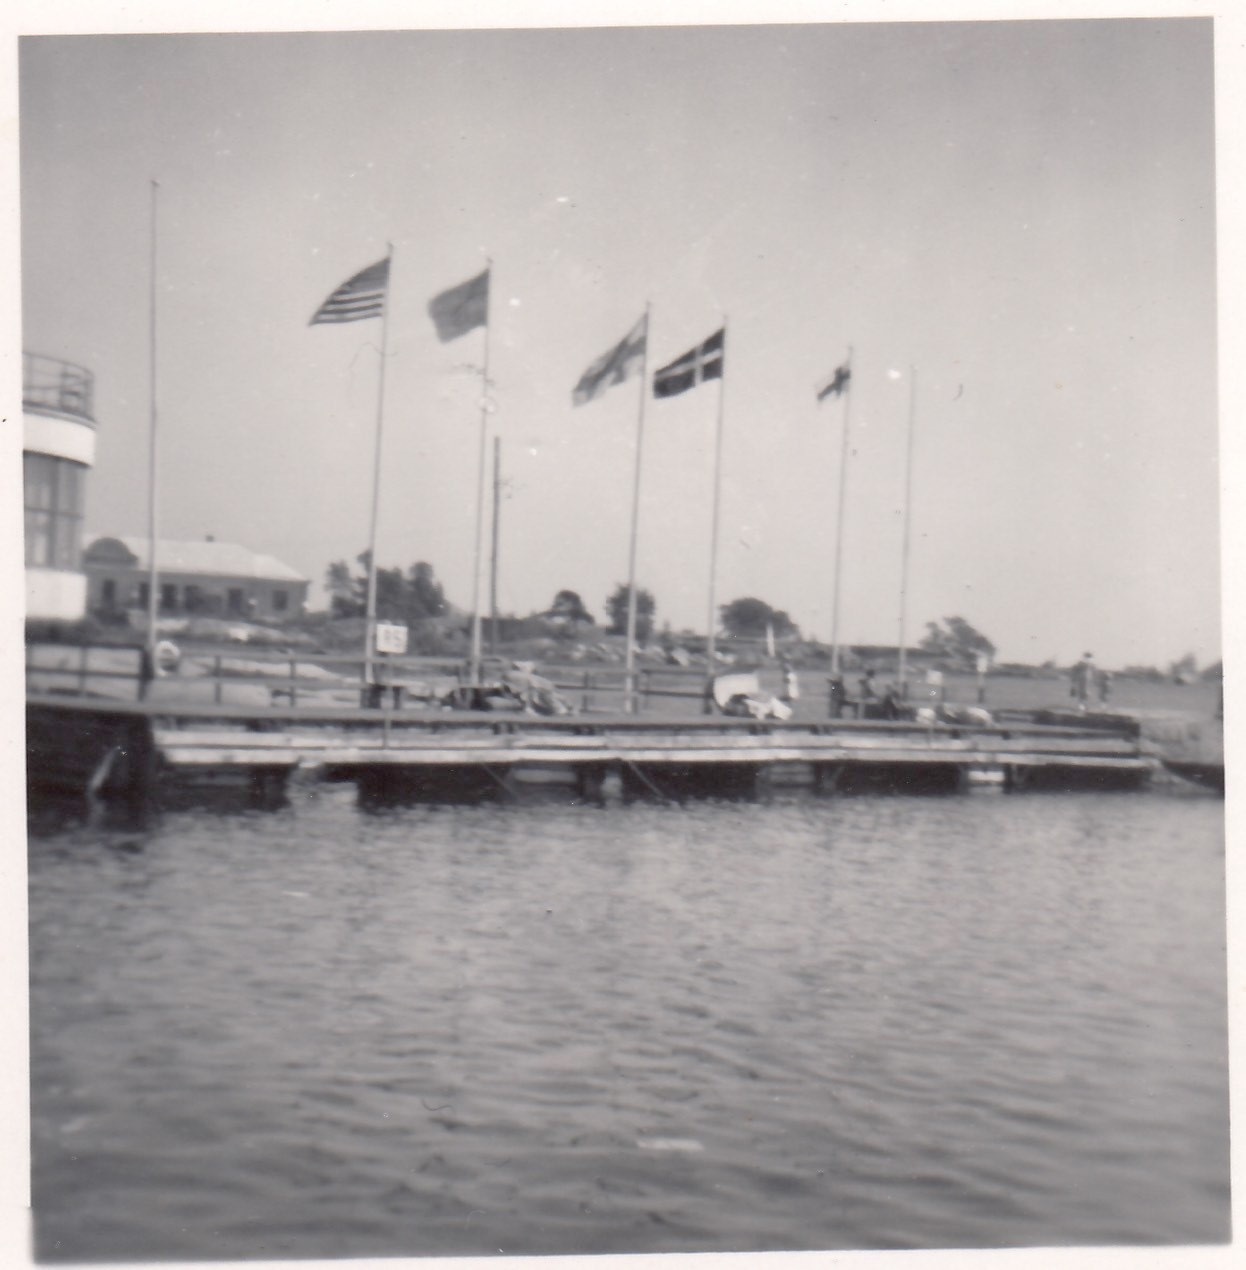 The flag of the Faroe Islands flew at the Closing Ceremony of the 1952 Olympic Games after the Chinese left the event early © Súsanna í Búðini